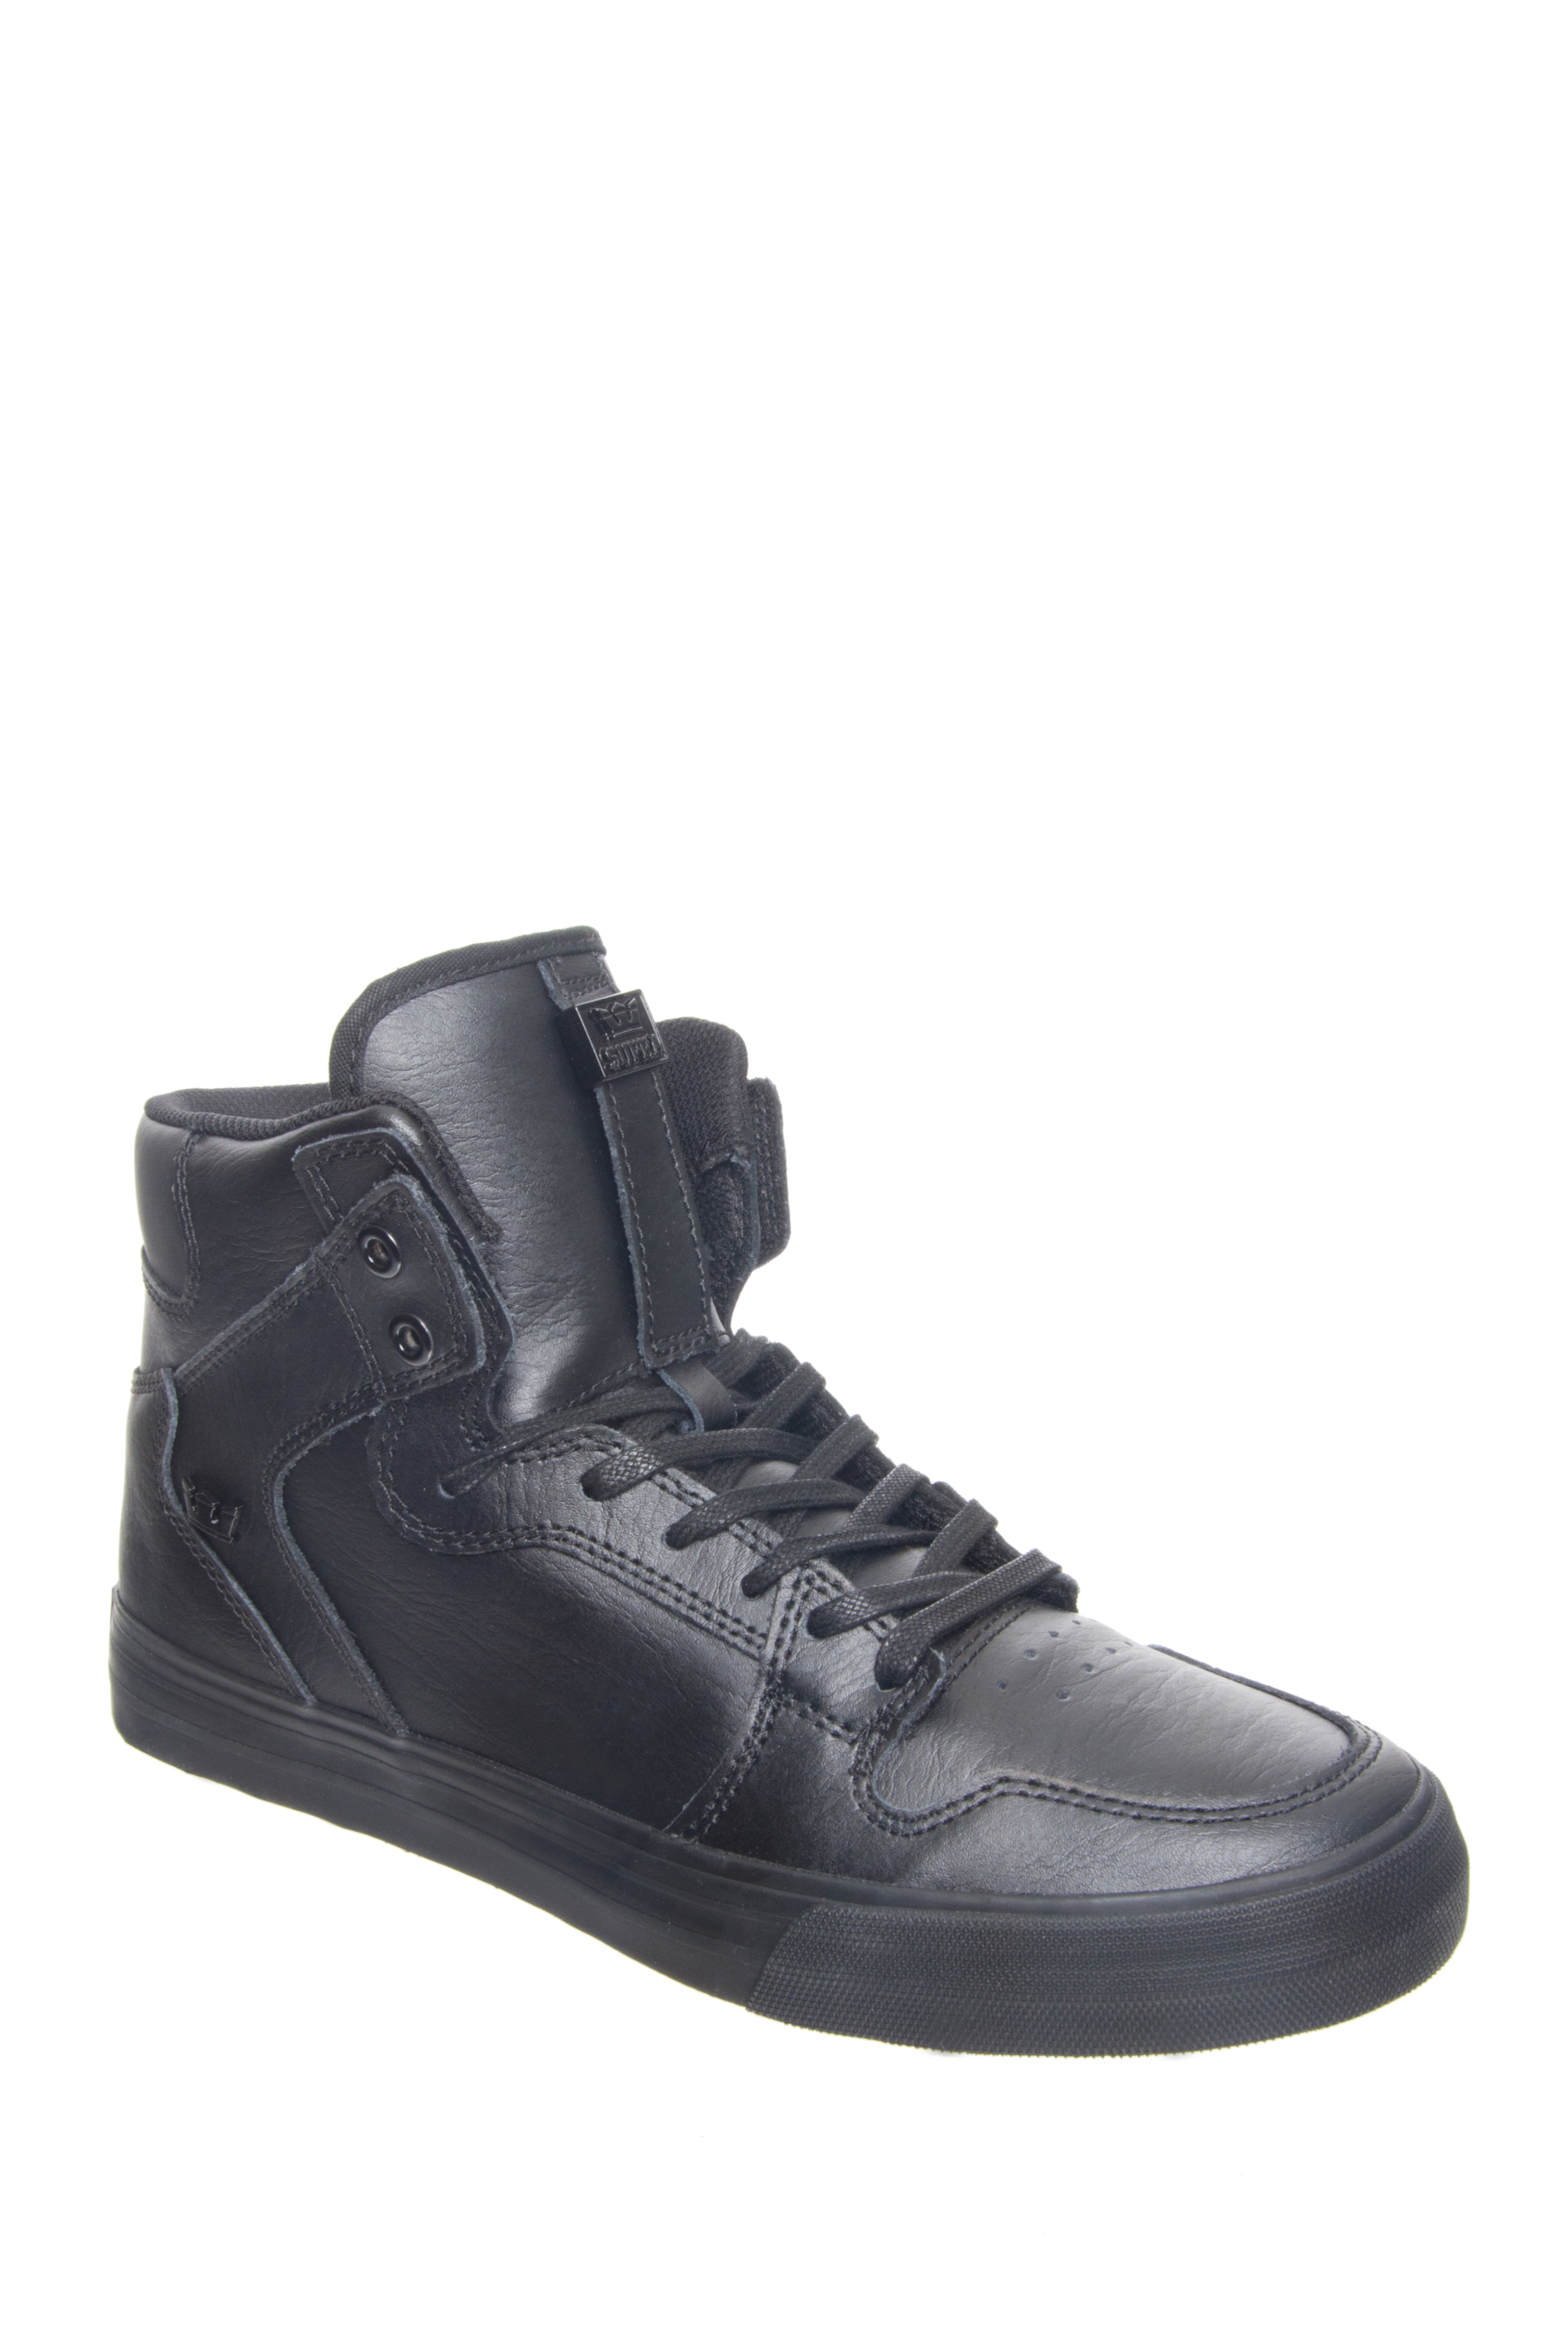 Supra Vaider Classic High Top Sneakers - Black / Black-Red